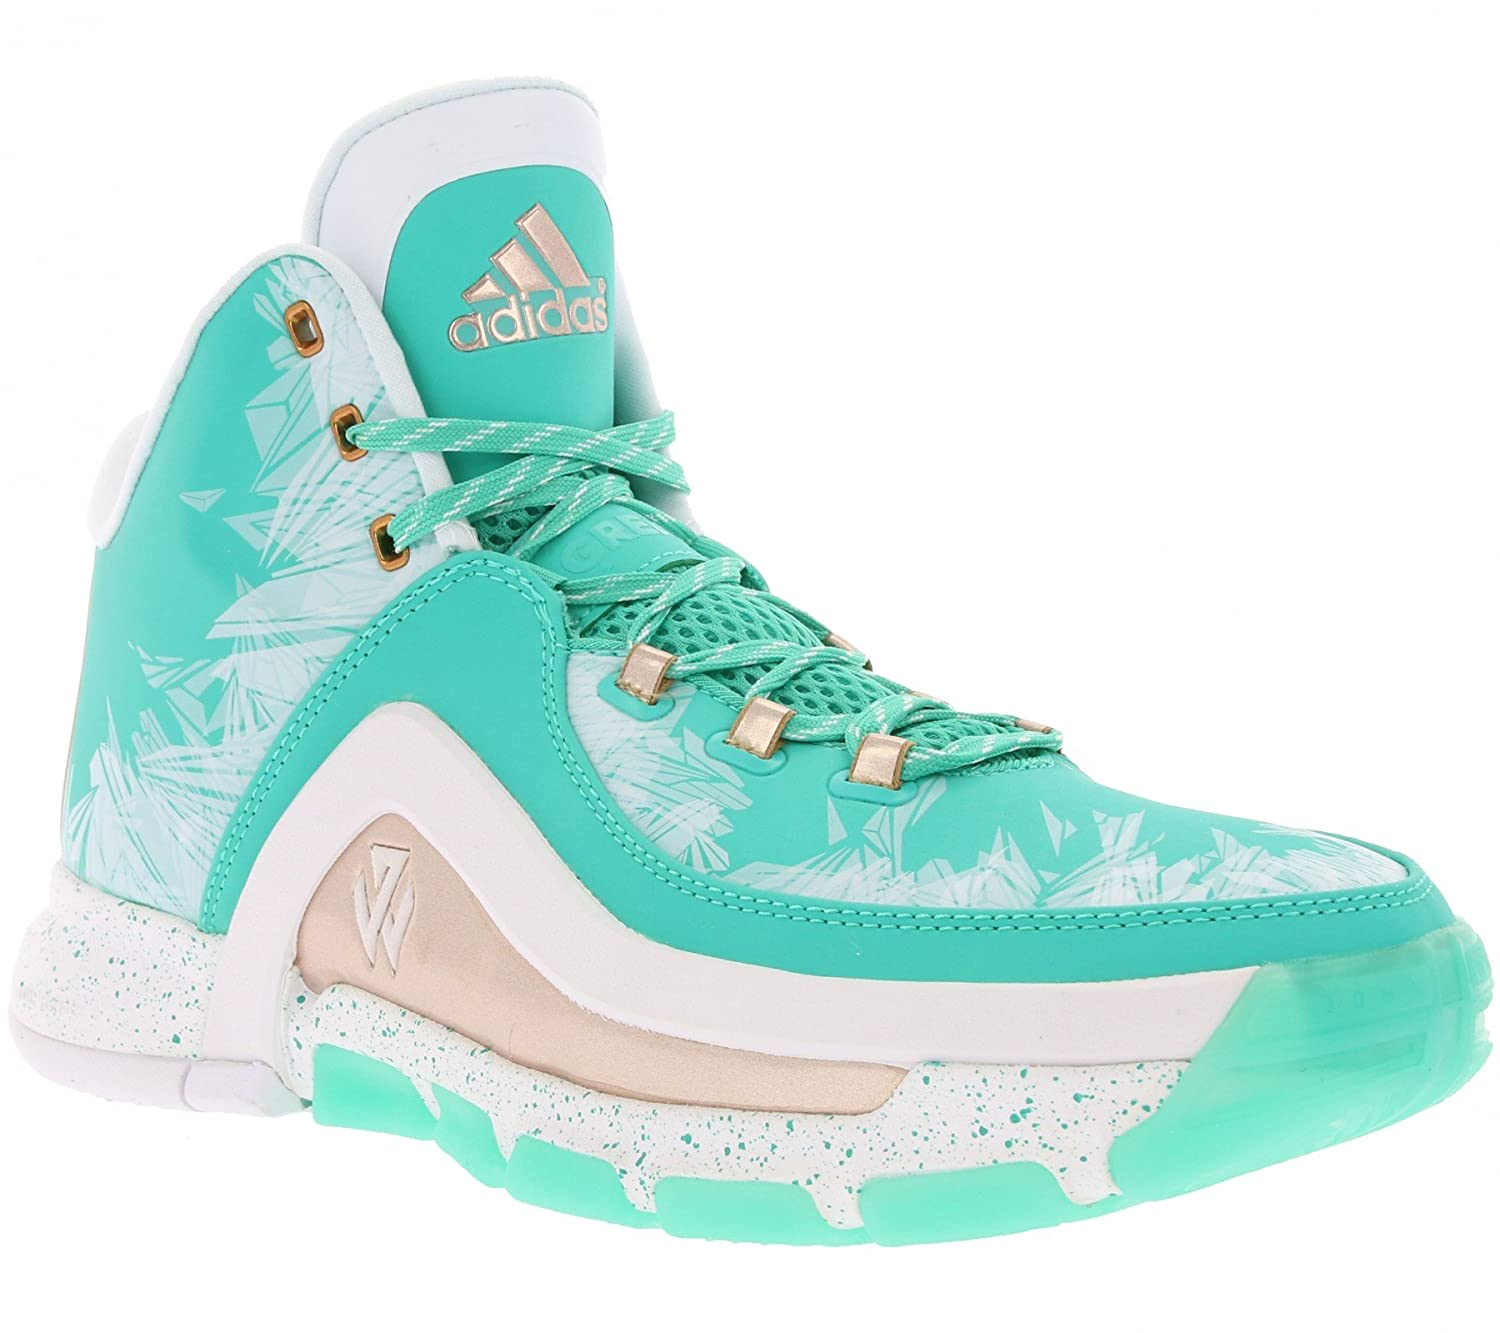 a9ed26f0f969 Adidas Performance J Wall 2 Men s Basketball Shoes Turquoise S85575   Amazon.co.uk  Sports   Outdoors